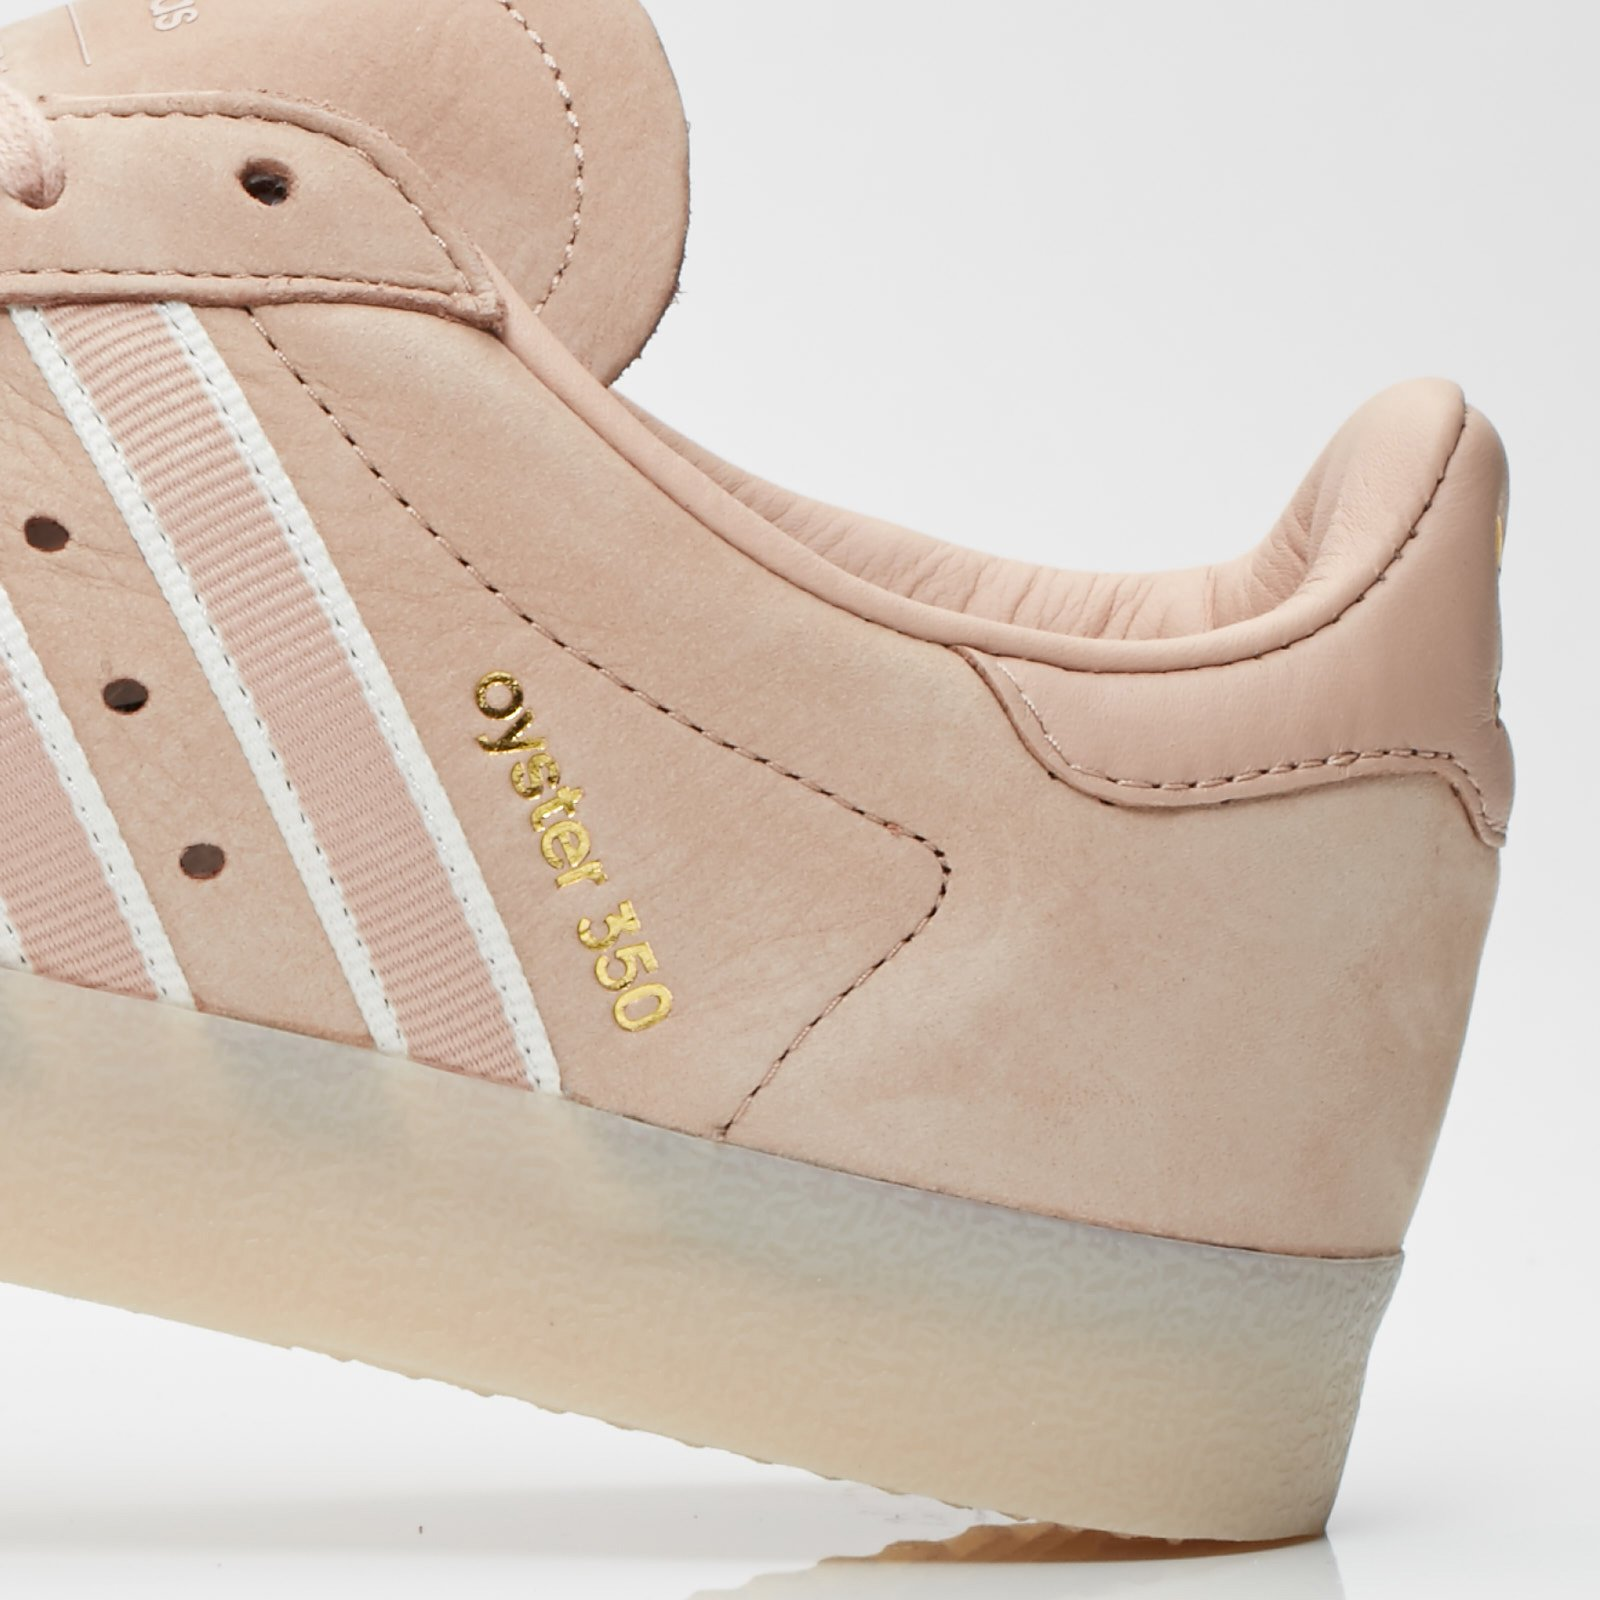 new style b4aac 1b660 adidas 350 x Oyster - Db1976 - Sneakersnstuff | sneakers ...